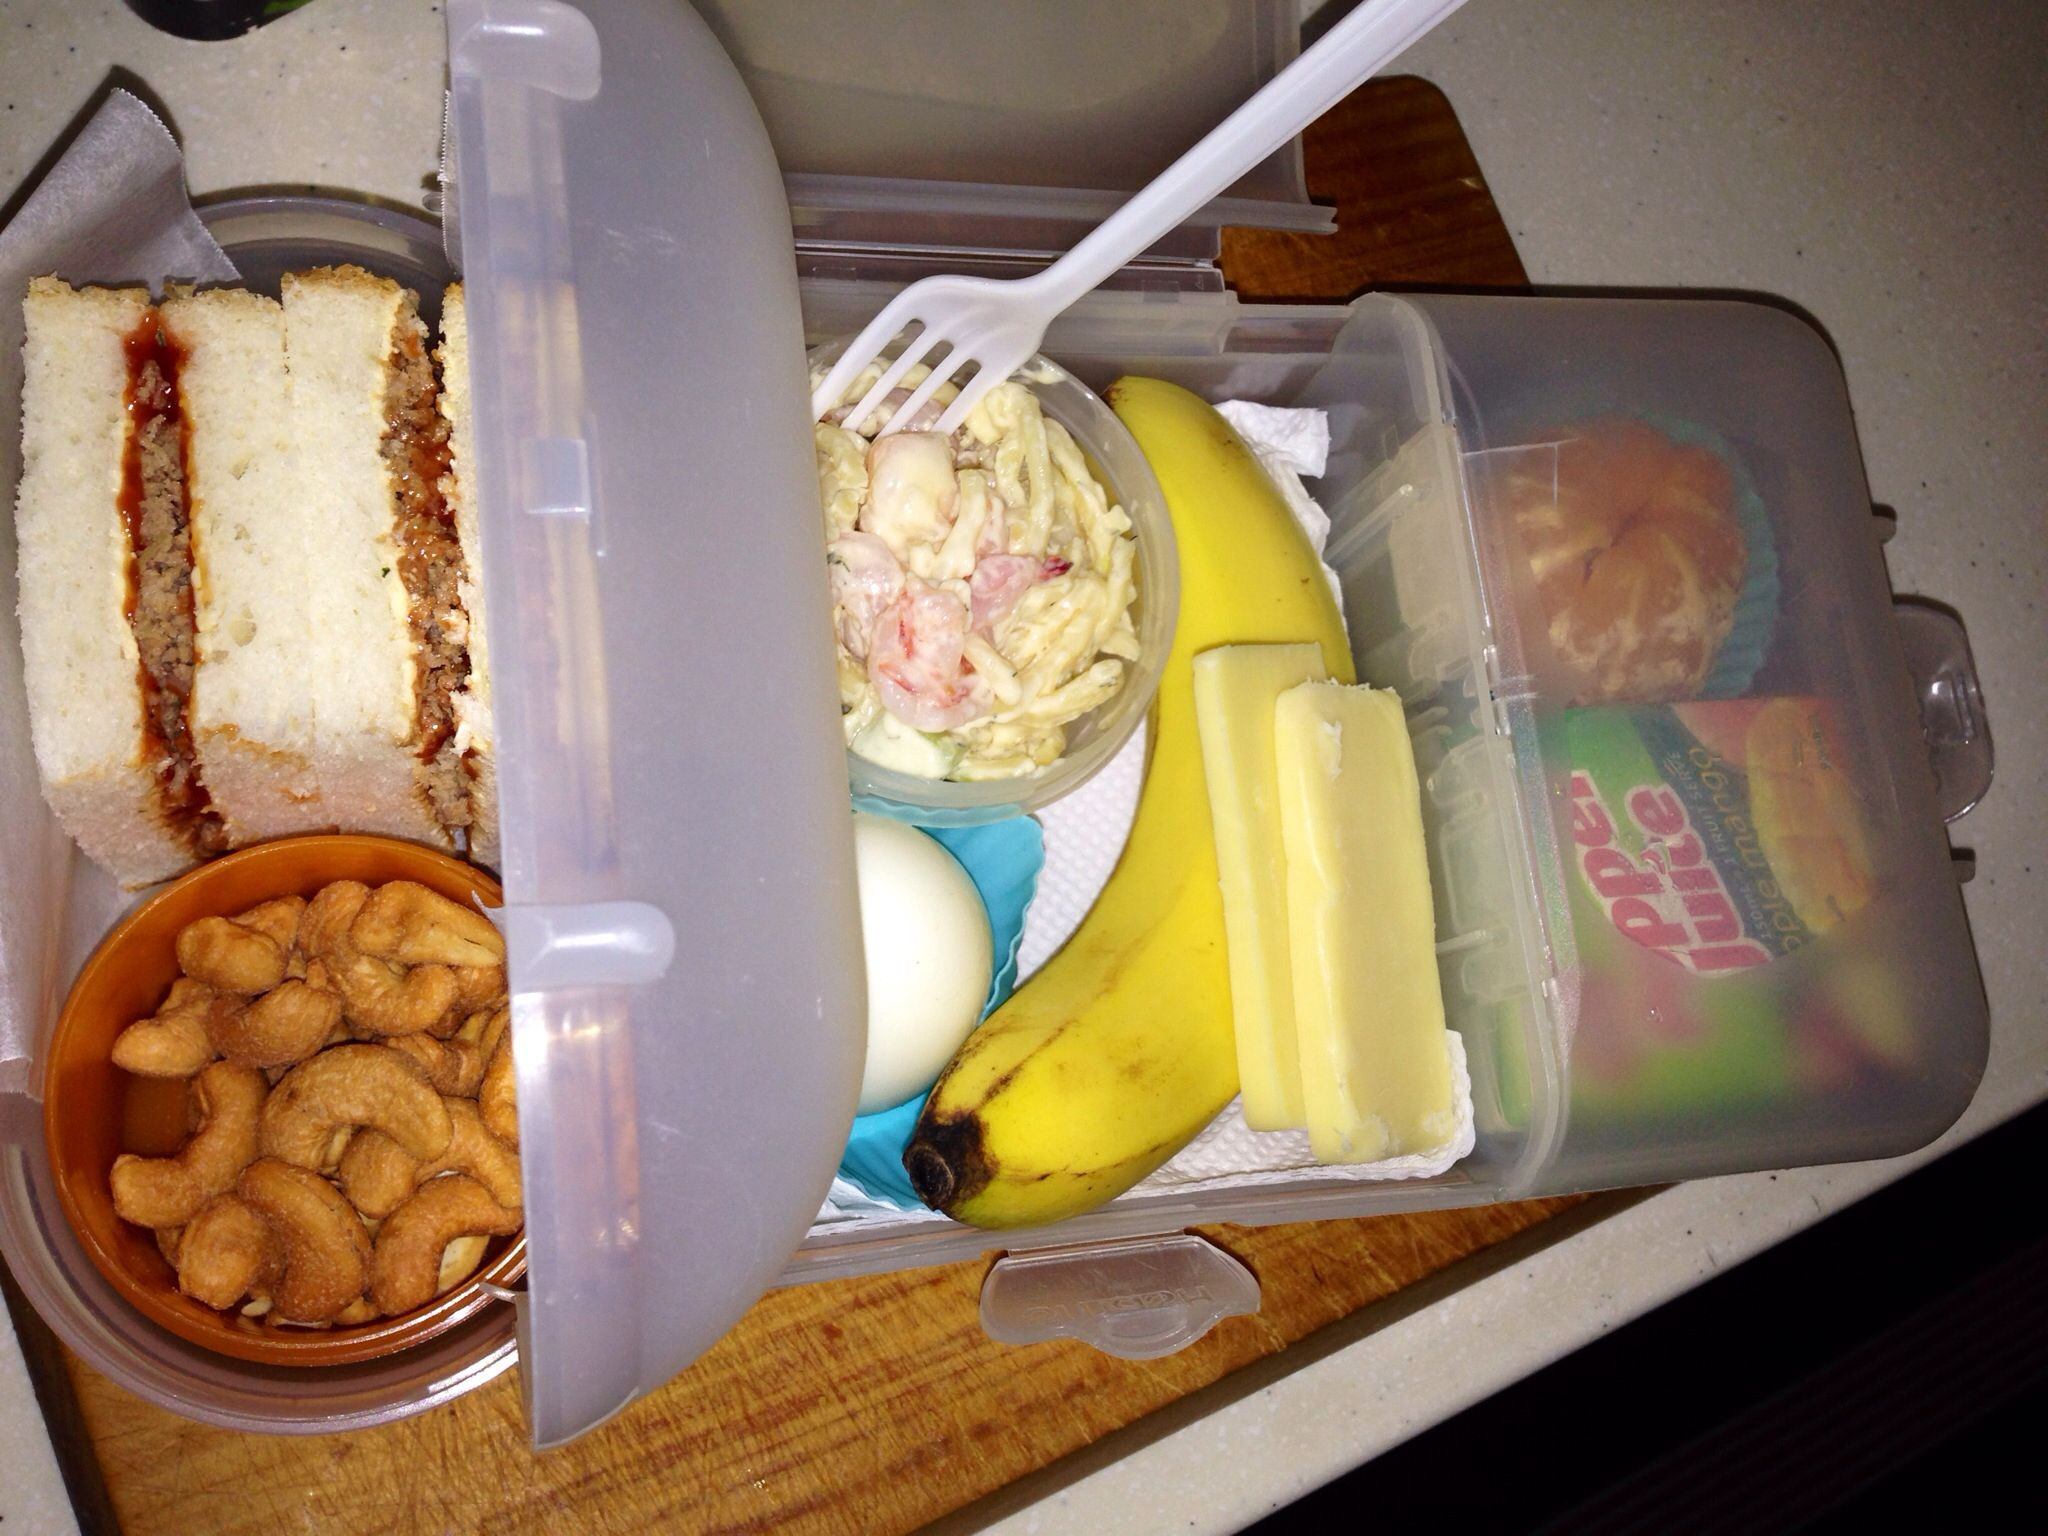 Pin by Kris Halliwell on Lunch Box Ideas | Pinterest